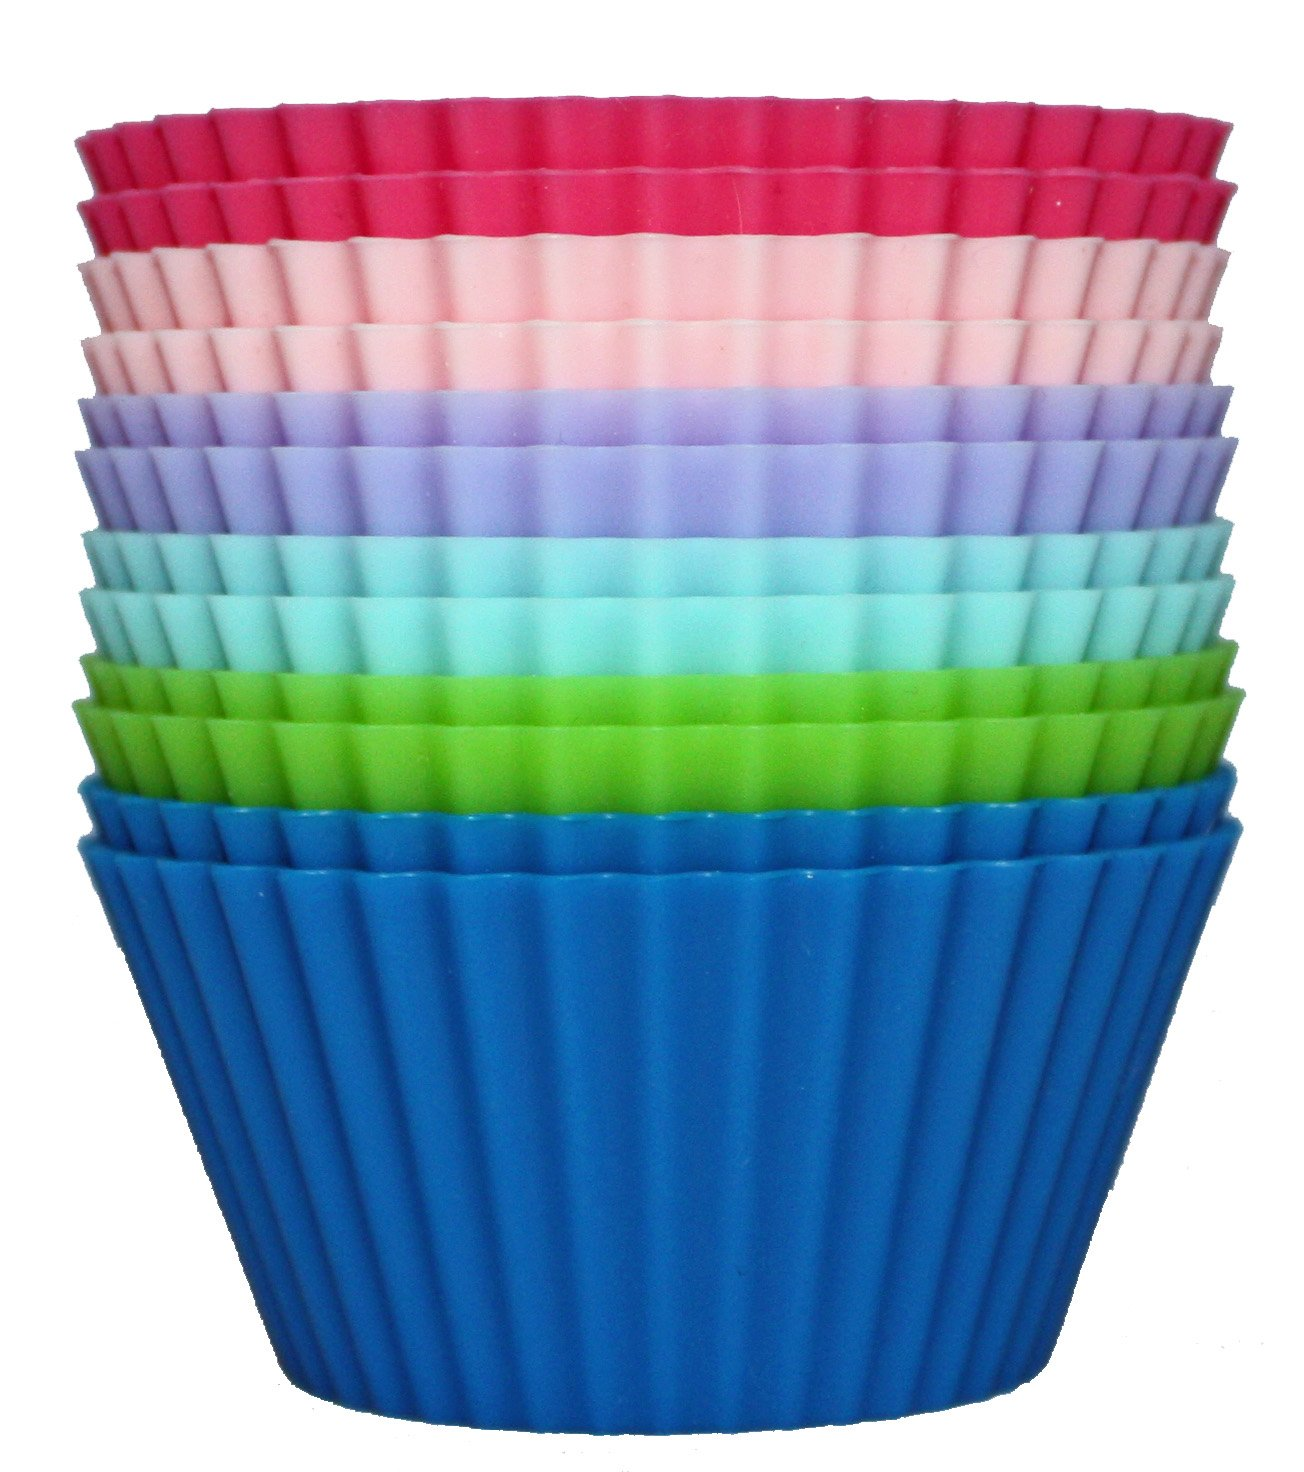 Silicone Cupcake Liners 1 doz BPA Free just $8.37 with Amazon Prime Shipping